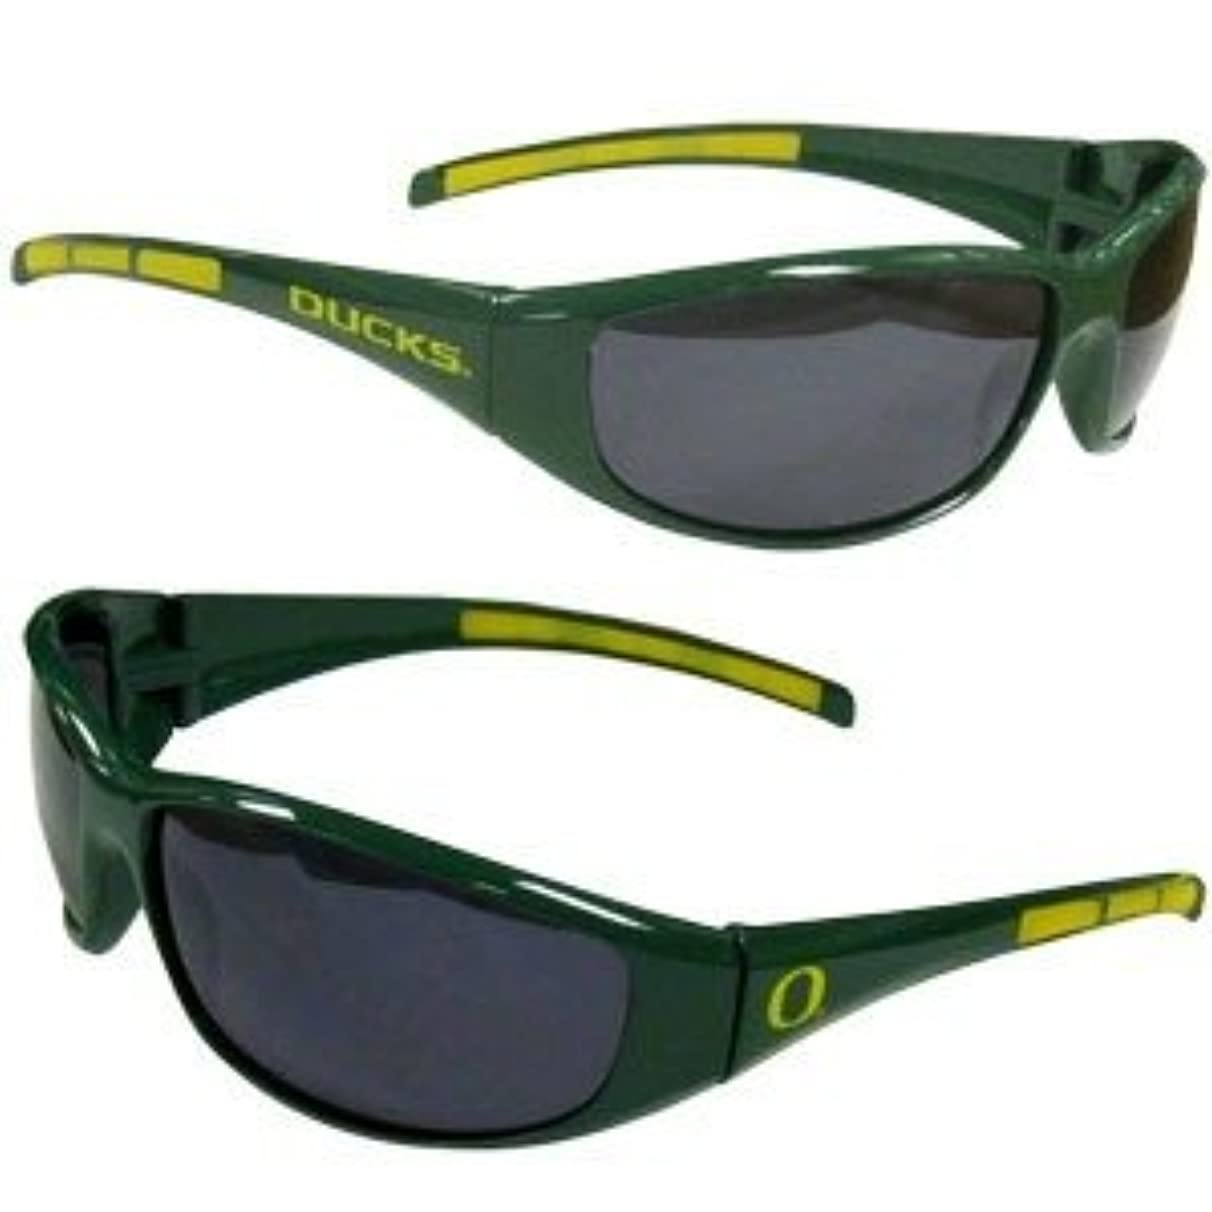 Oregon Ducks Sunglasses - One Pair